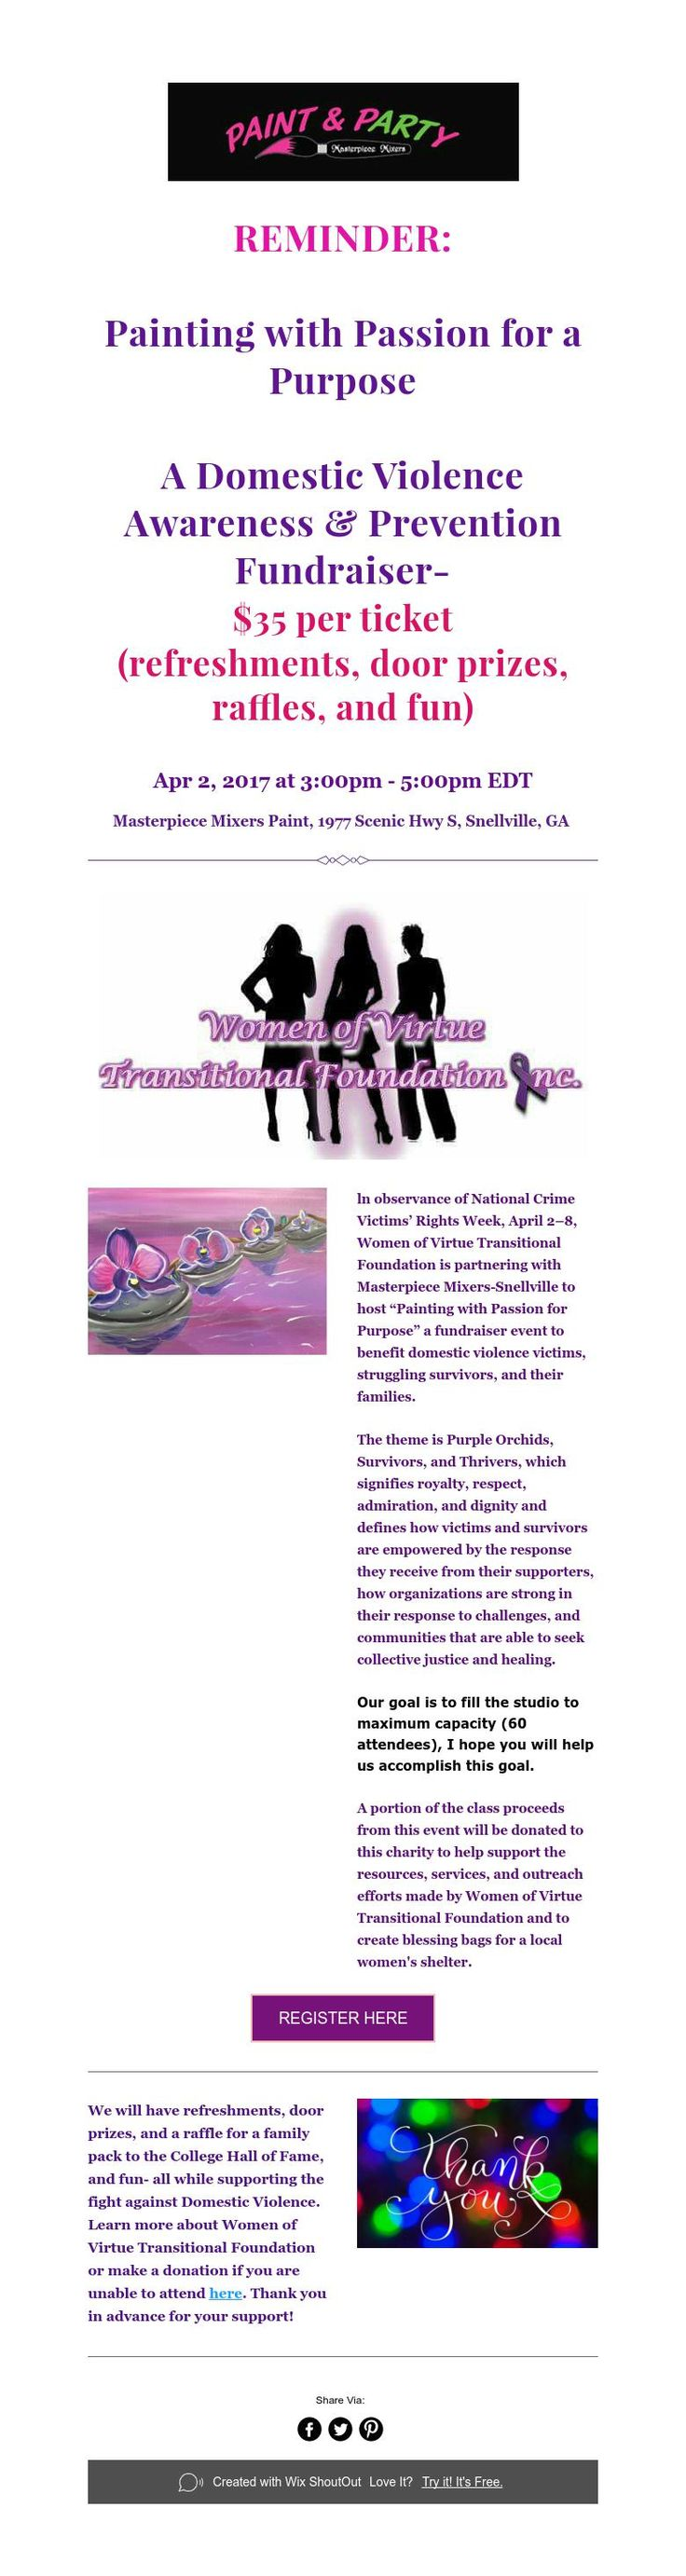 Ideas For Giving Away Door Prizes door games r us Reminder Painting With Passion For A Purpose A Domestic Violence Awareness Prevention Fundraiser